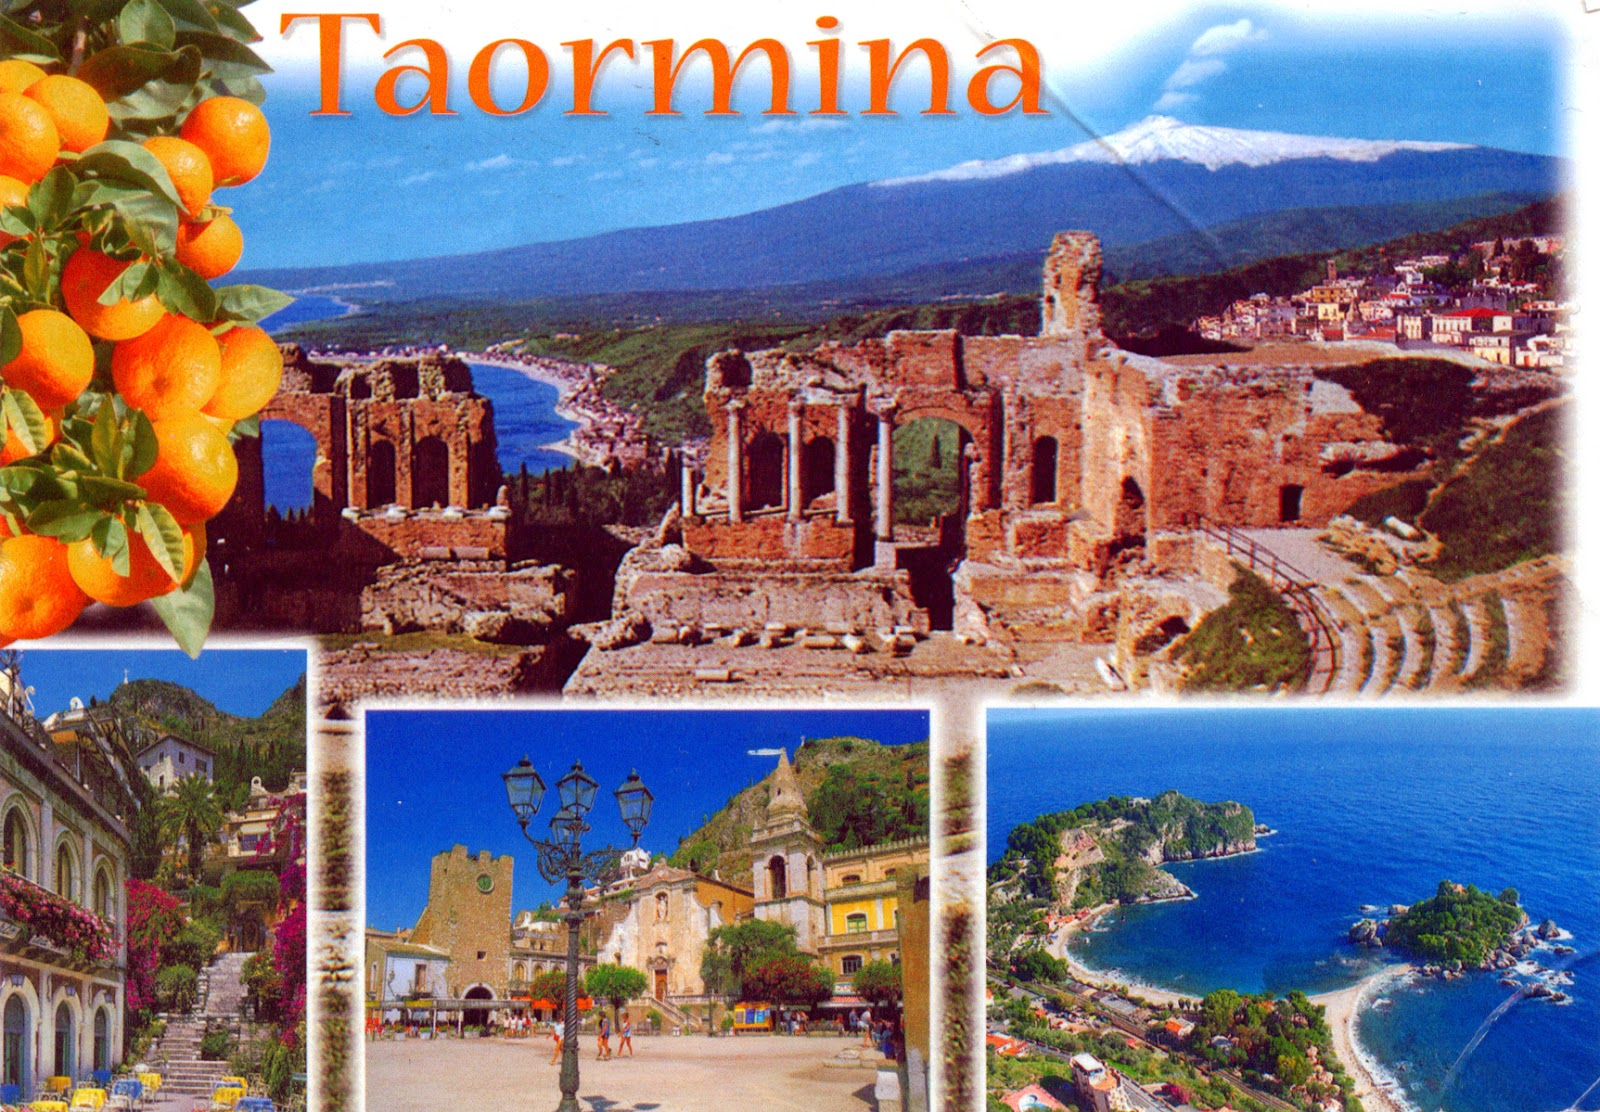 World  Come To My Home   0559  0839 Italy  Sicily